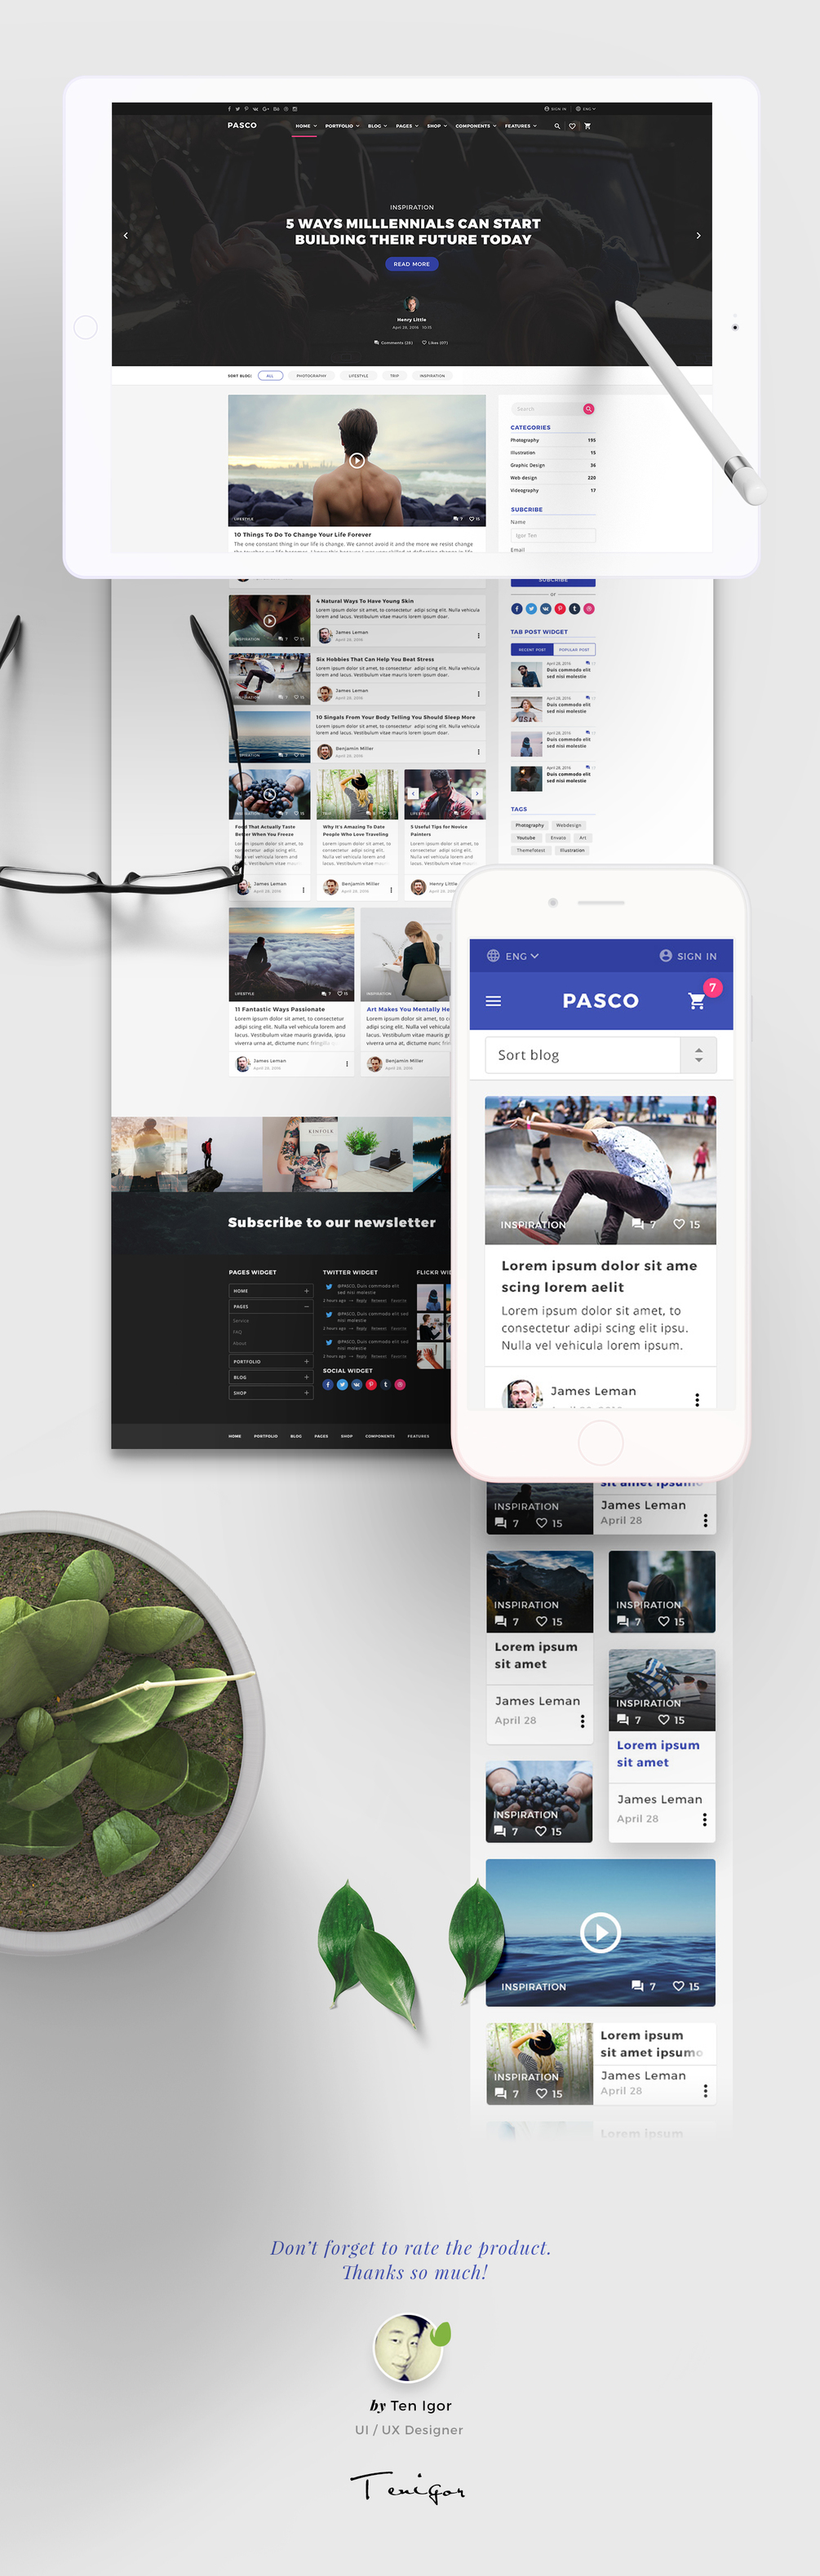 pasco-free-sample-psd-template-preview